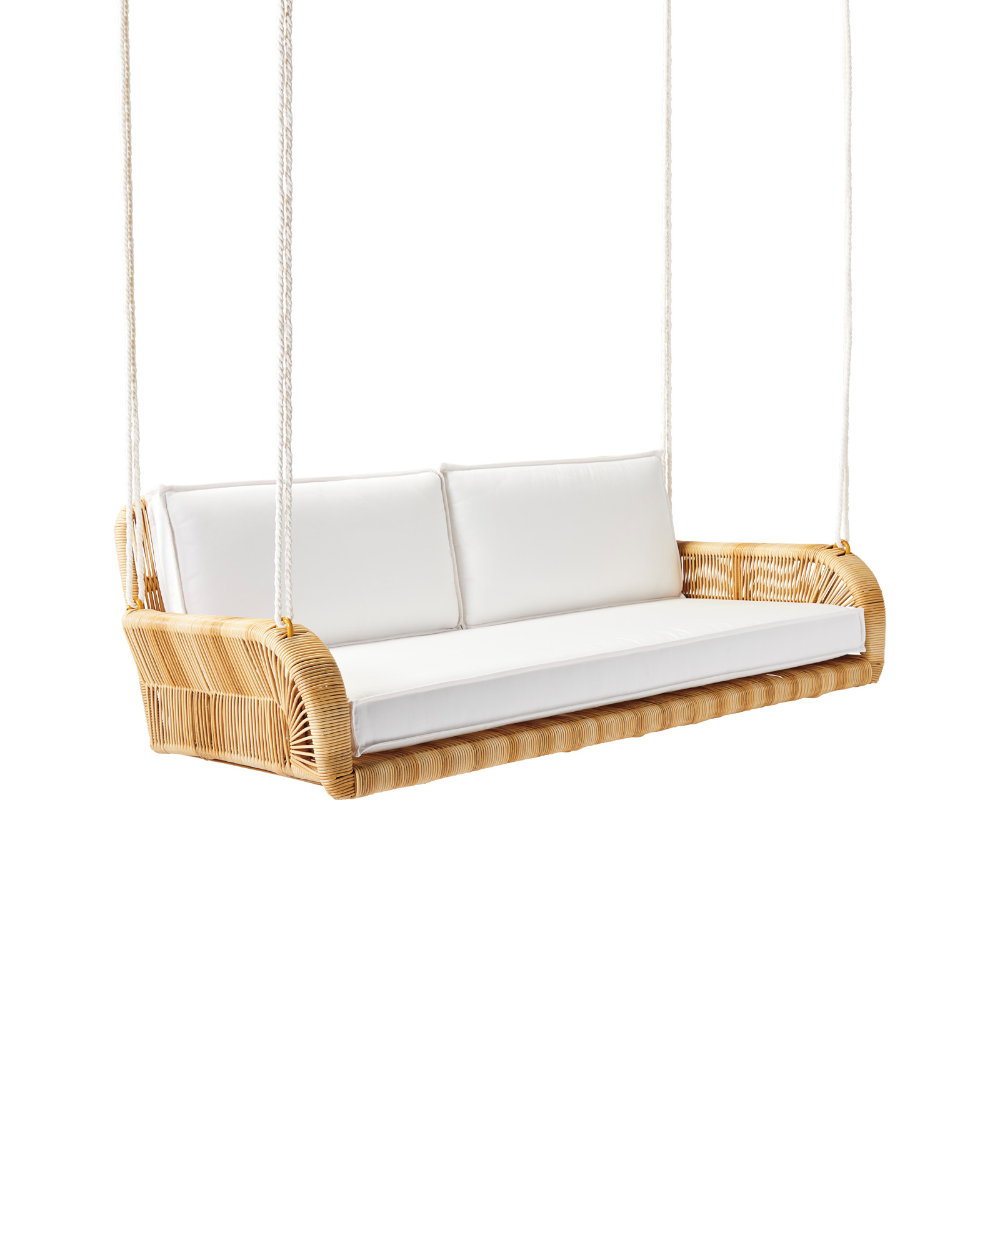 Springwood Hanging Daybed In 2020 Hanging Daybed Hanging Rattan Chair Daybed